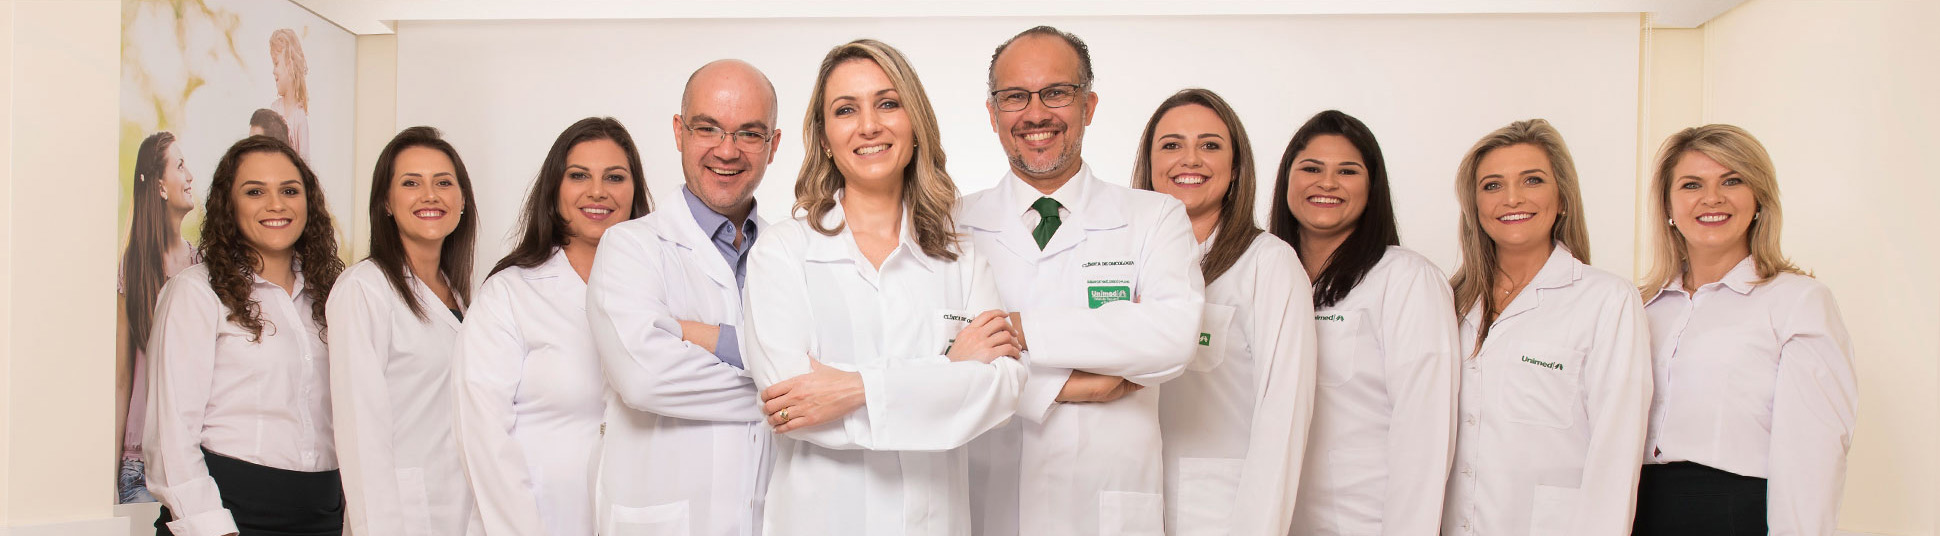 unimed-toyz-campanha-oncologia-cancer